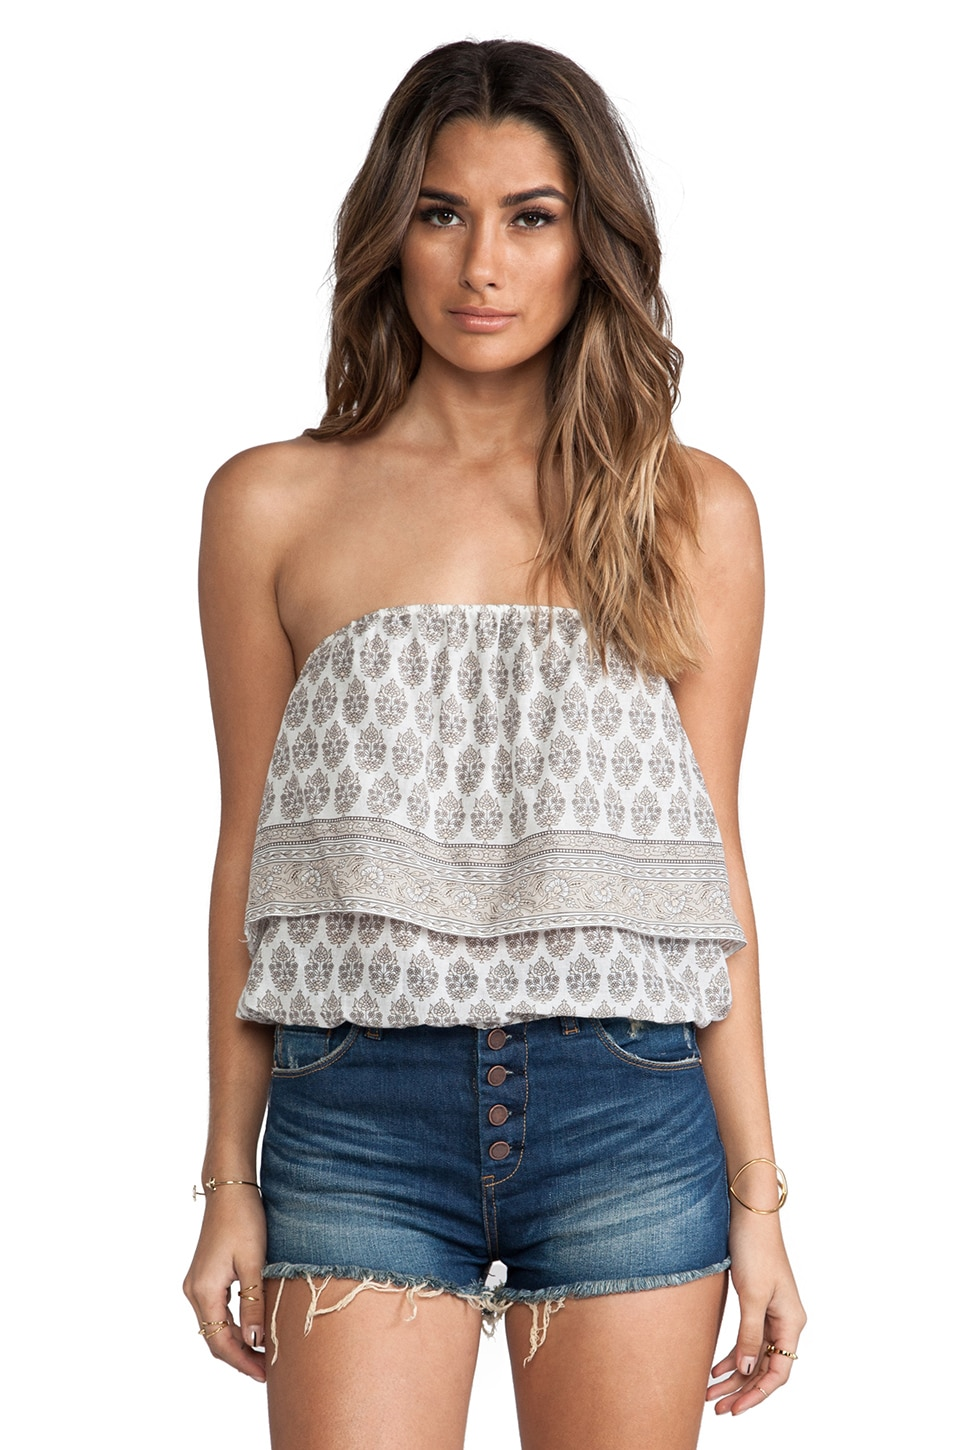 Eternal Sunshine Creations Boehem Tube Top in Dry Sand